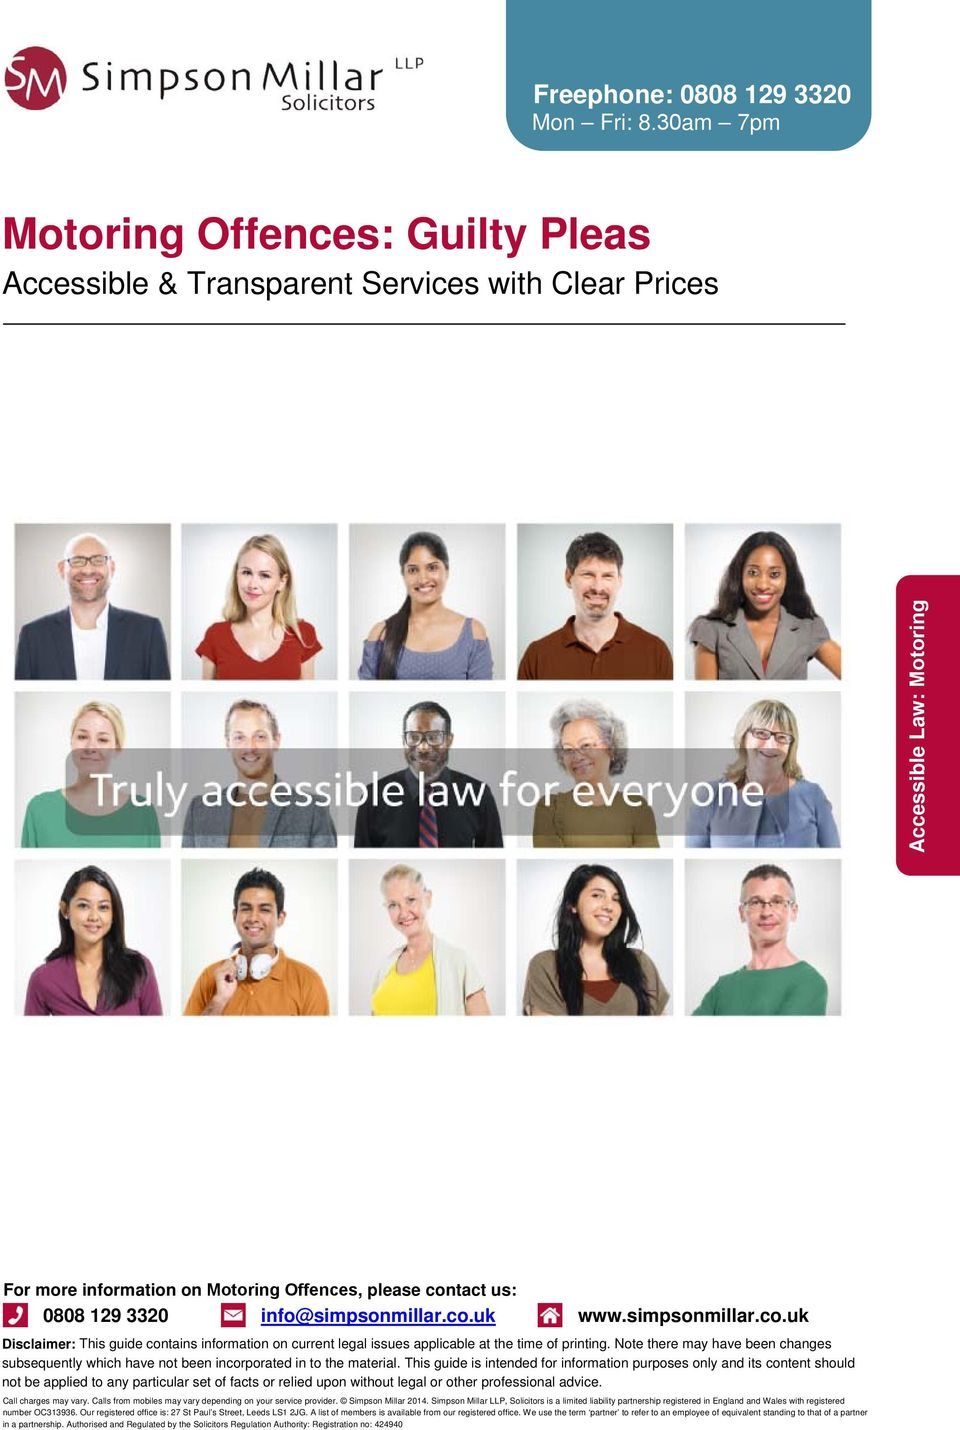 Transparent Services with